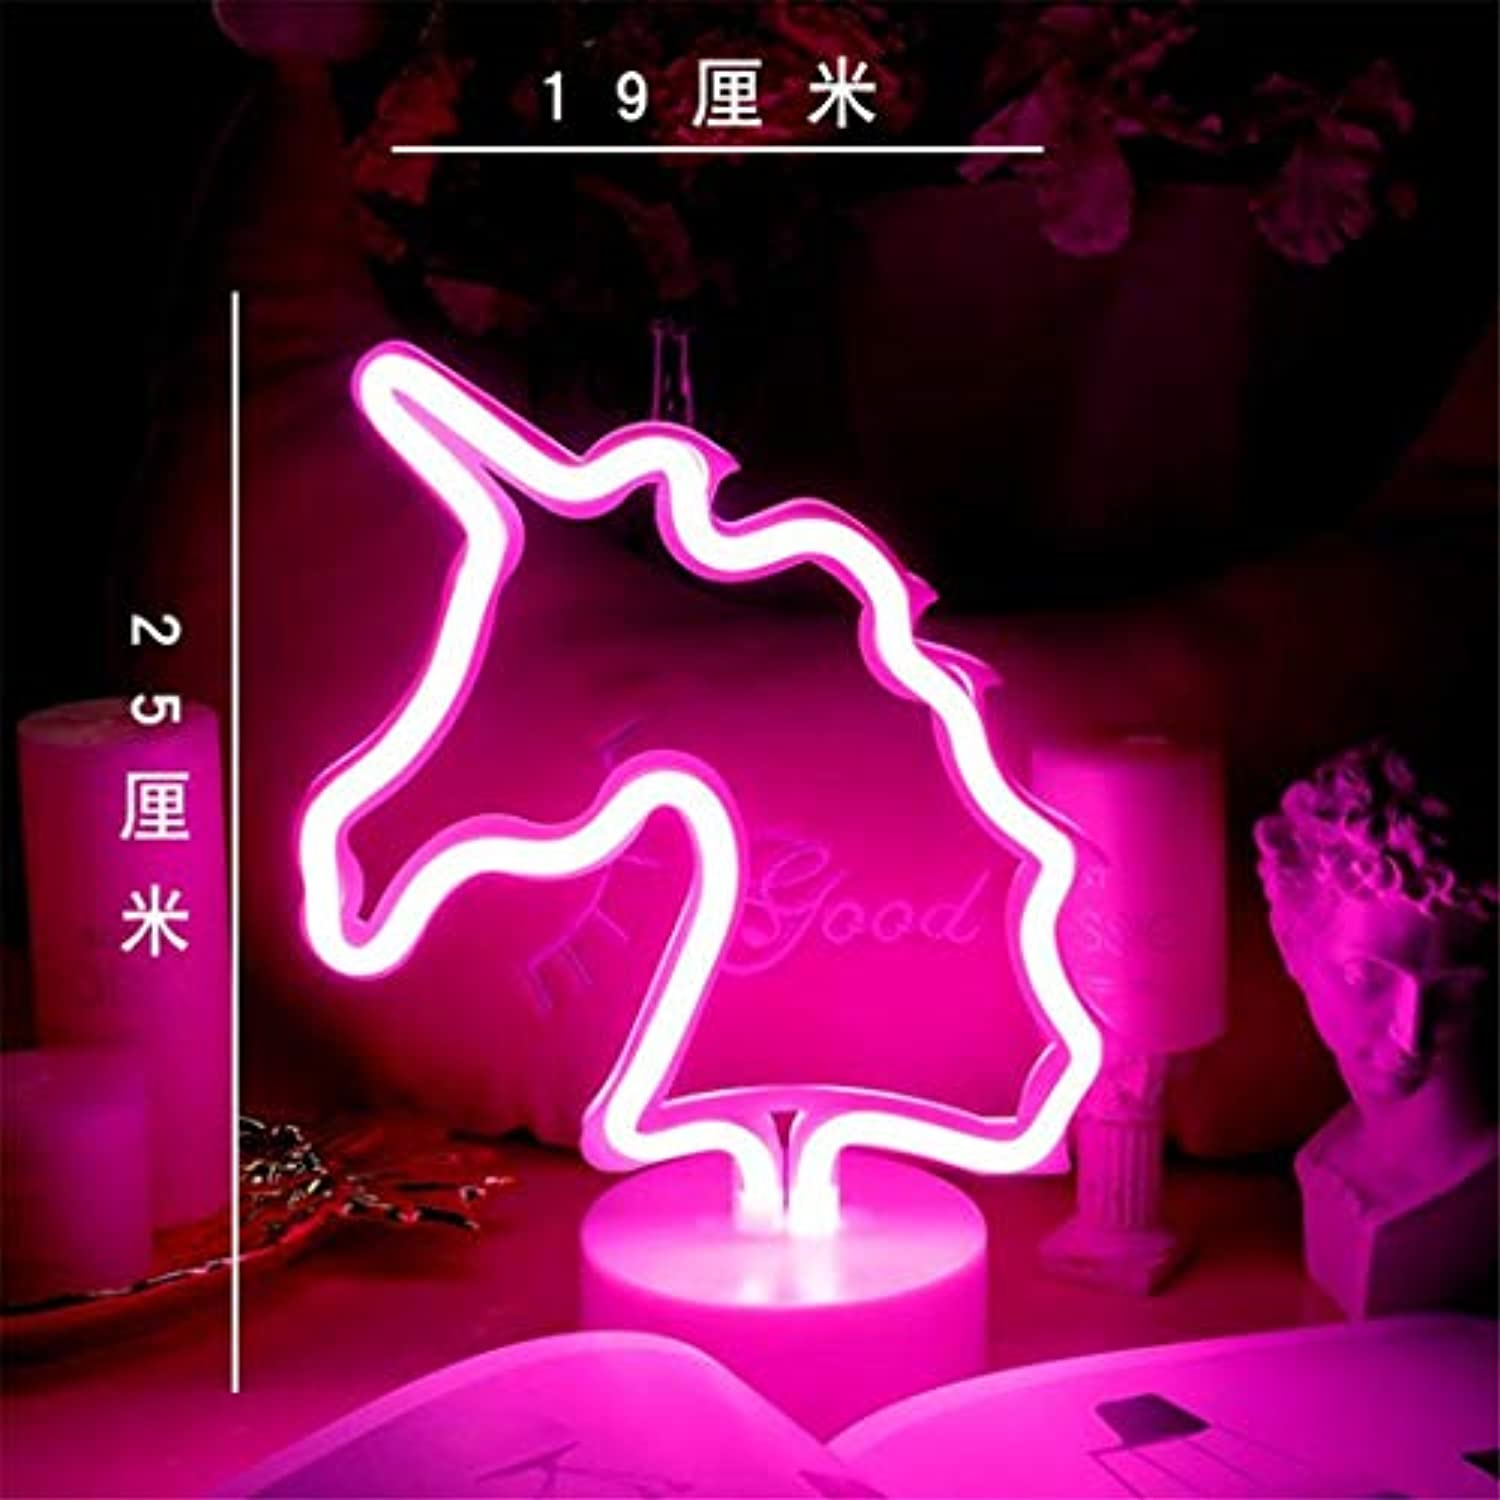 QiXian Ceiling Light Ceiling Lamps Night Lamps Led Neon Girl Room Layout Girl Heart Bedroom ins Decorative Light Lamp Unicorn Night Lamps